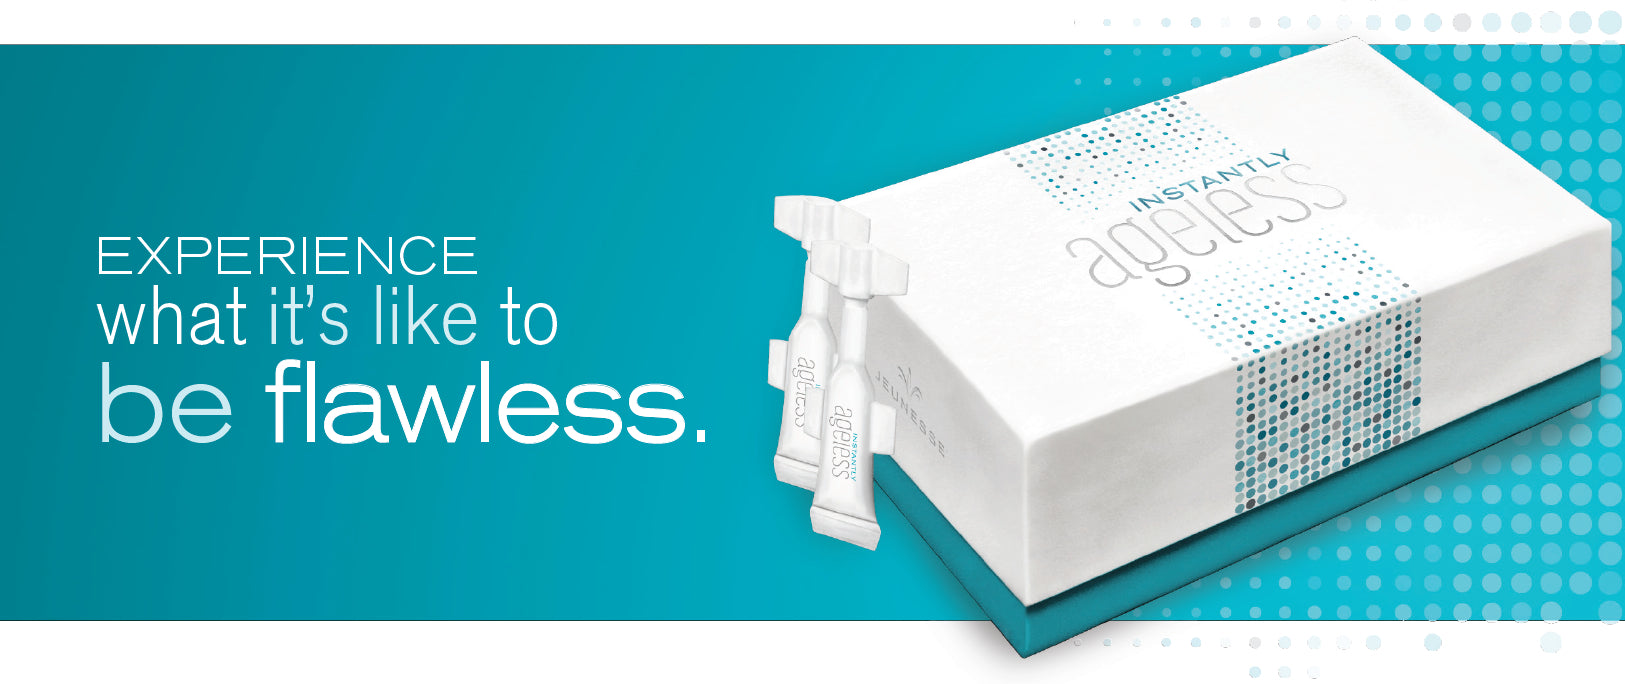 Instantly Ageless Products